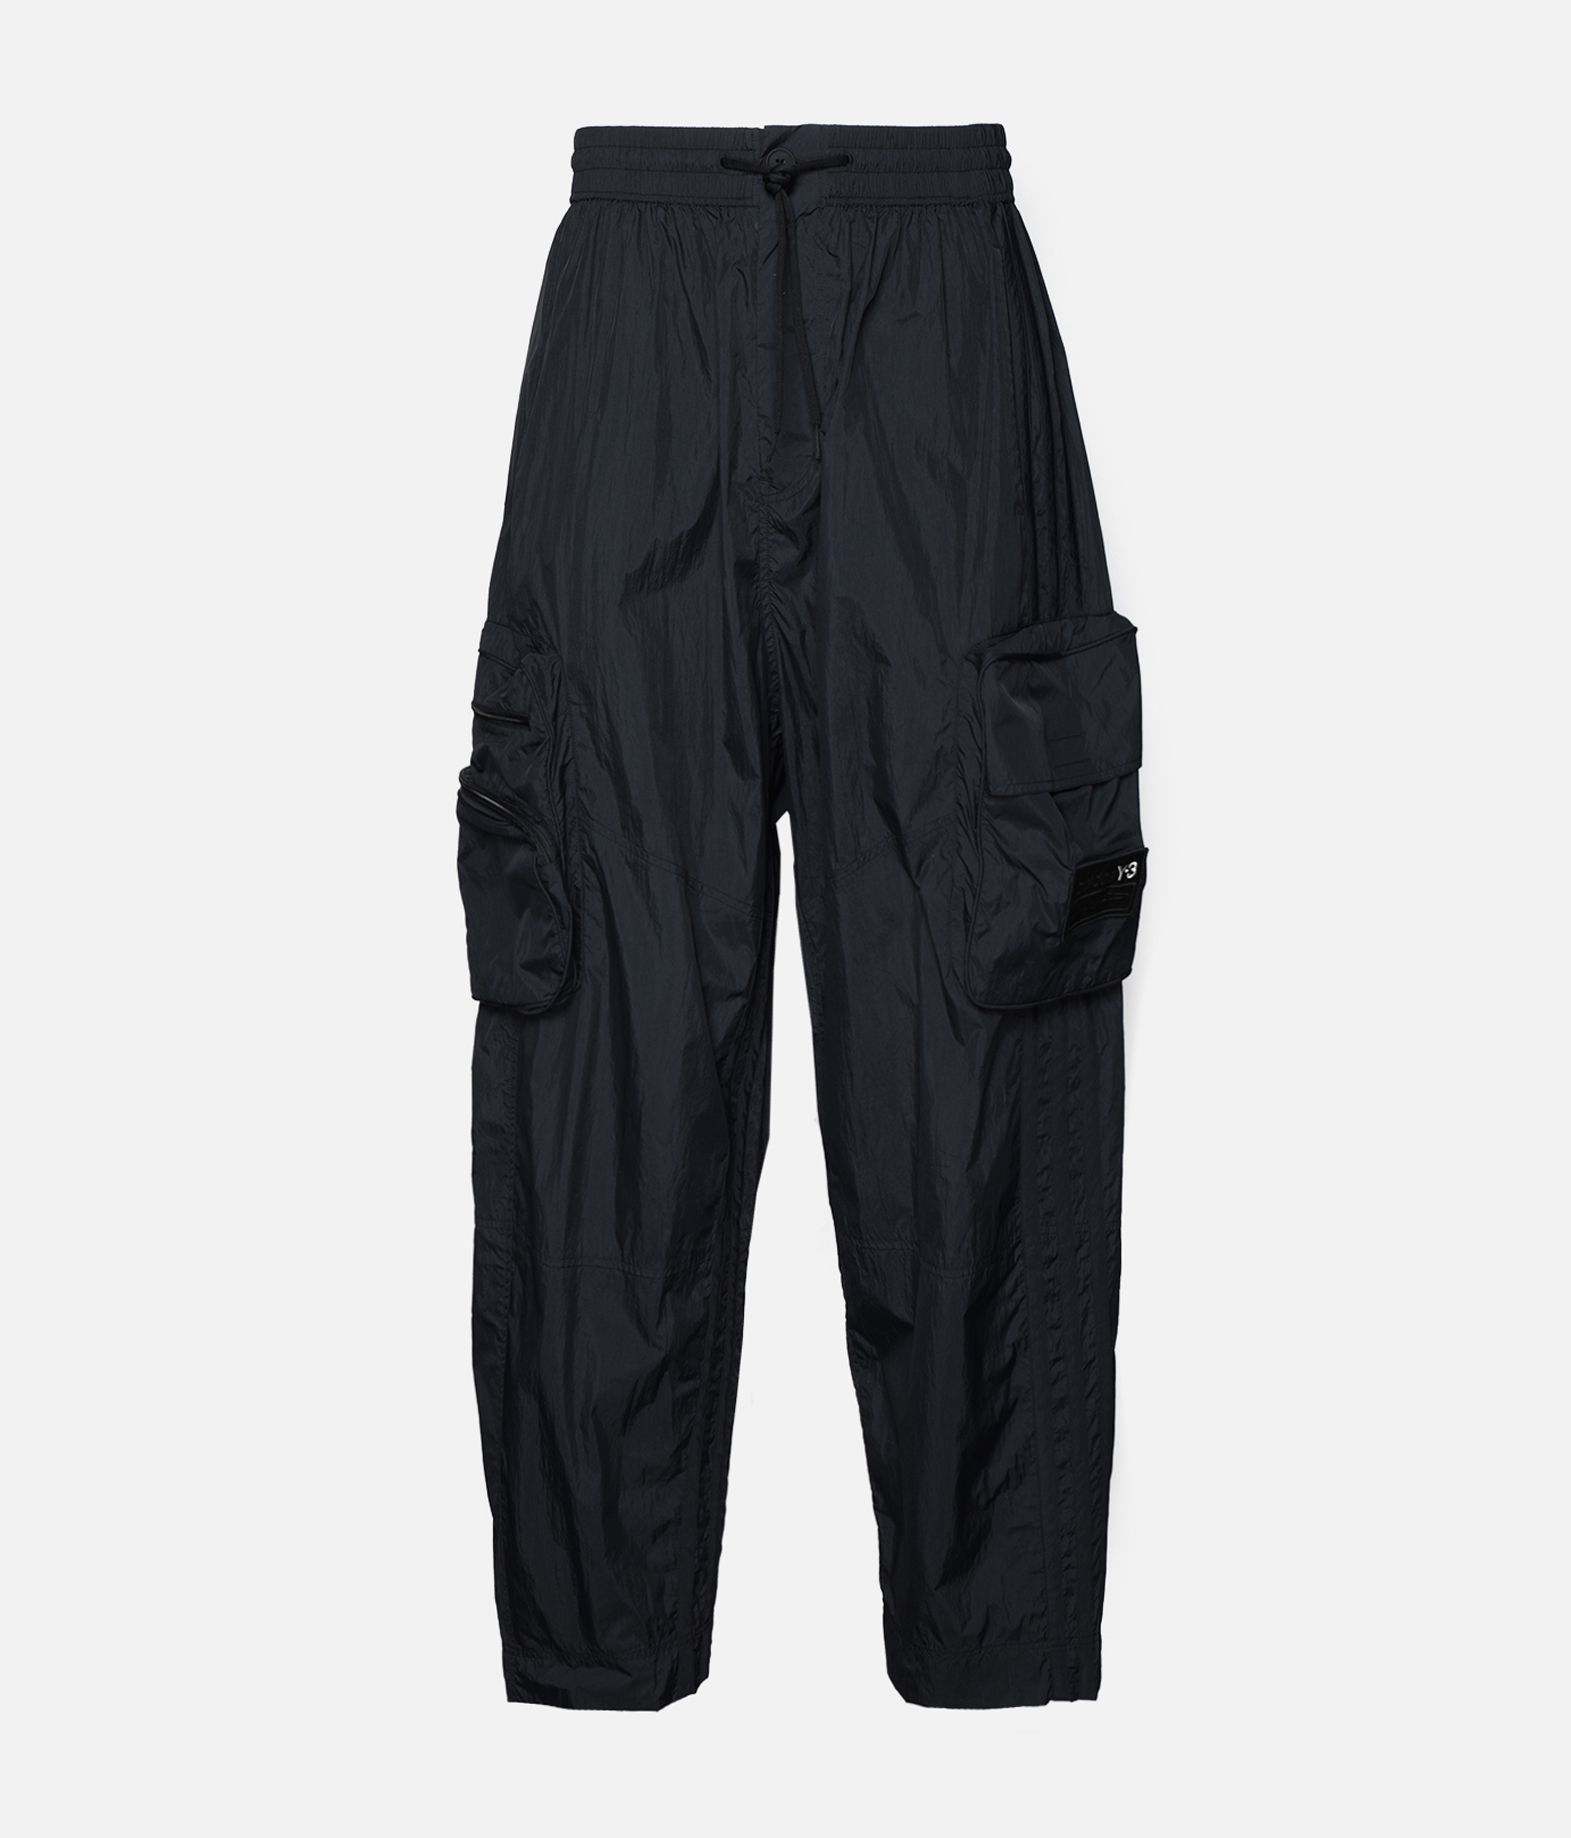 Y-3 Y-3 Shell Track Pants Track pant Man f